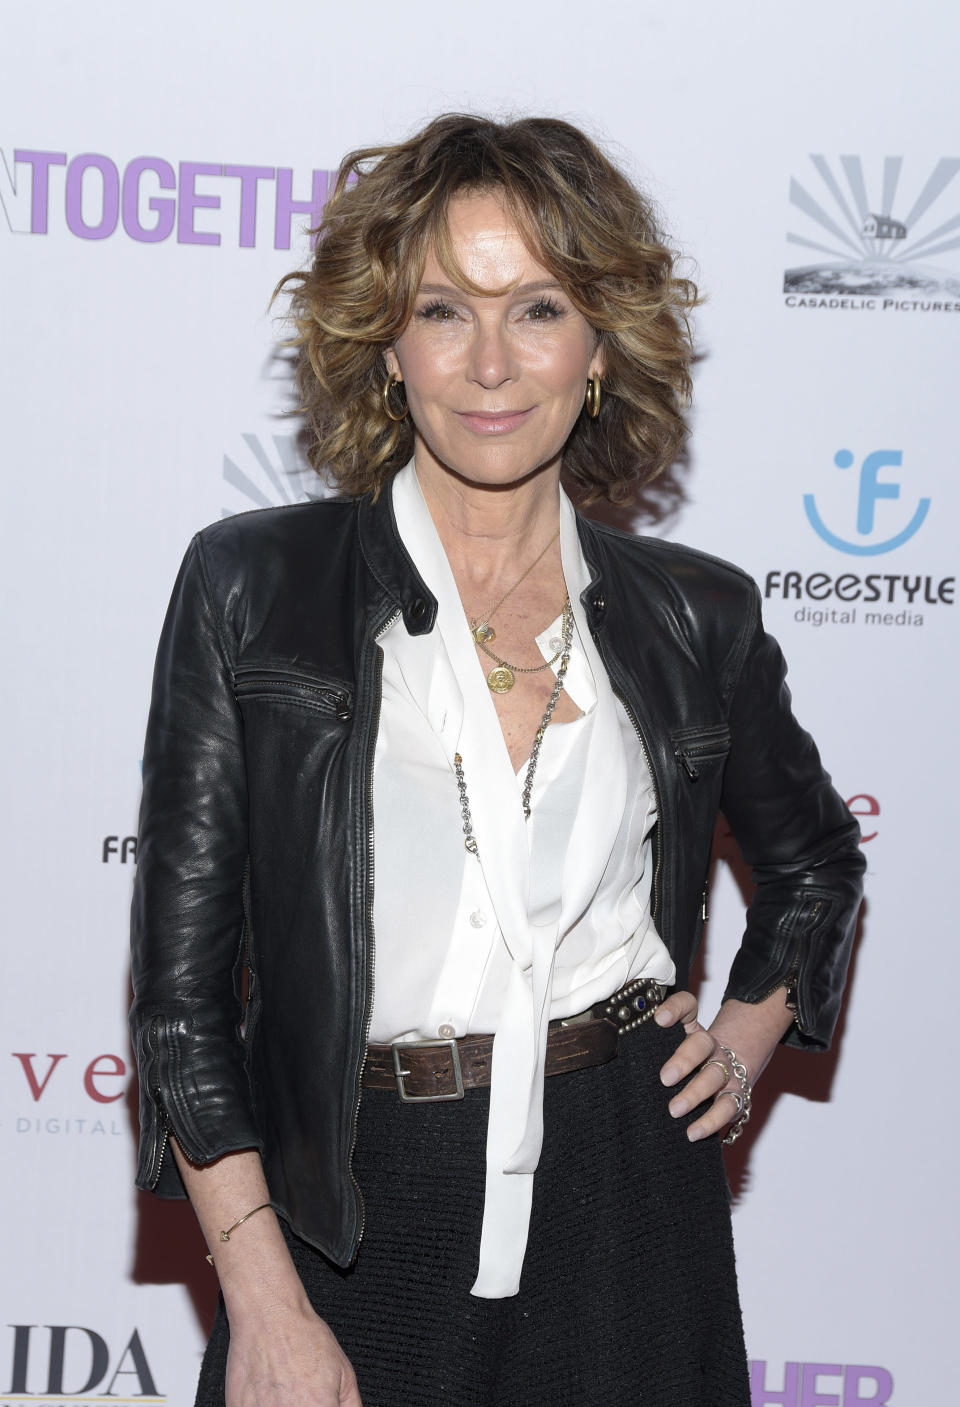 """<p>'Dirty Dancing' star Jennifer Grey famously regrets the nose job she had done back in 1989. """"I'll always be this once-famous actress nobody recognises because of a nose job,"""" she <a rel=""""nofollow noopener"""" href=""""https://www.mirror.co.uk/3am/celebrity-news/jennifer-grey-on-patrick-swayze-dirty-1274628"""" target=""""_blank"""" data-ylk=""""slk:admitted"""" class=""""link rapid-noclick-resp"""">admitted</a>. <em>[Photo: Getty]</em> </p>"""